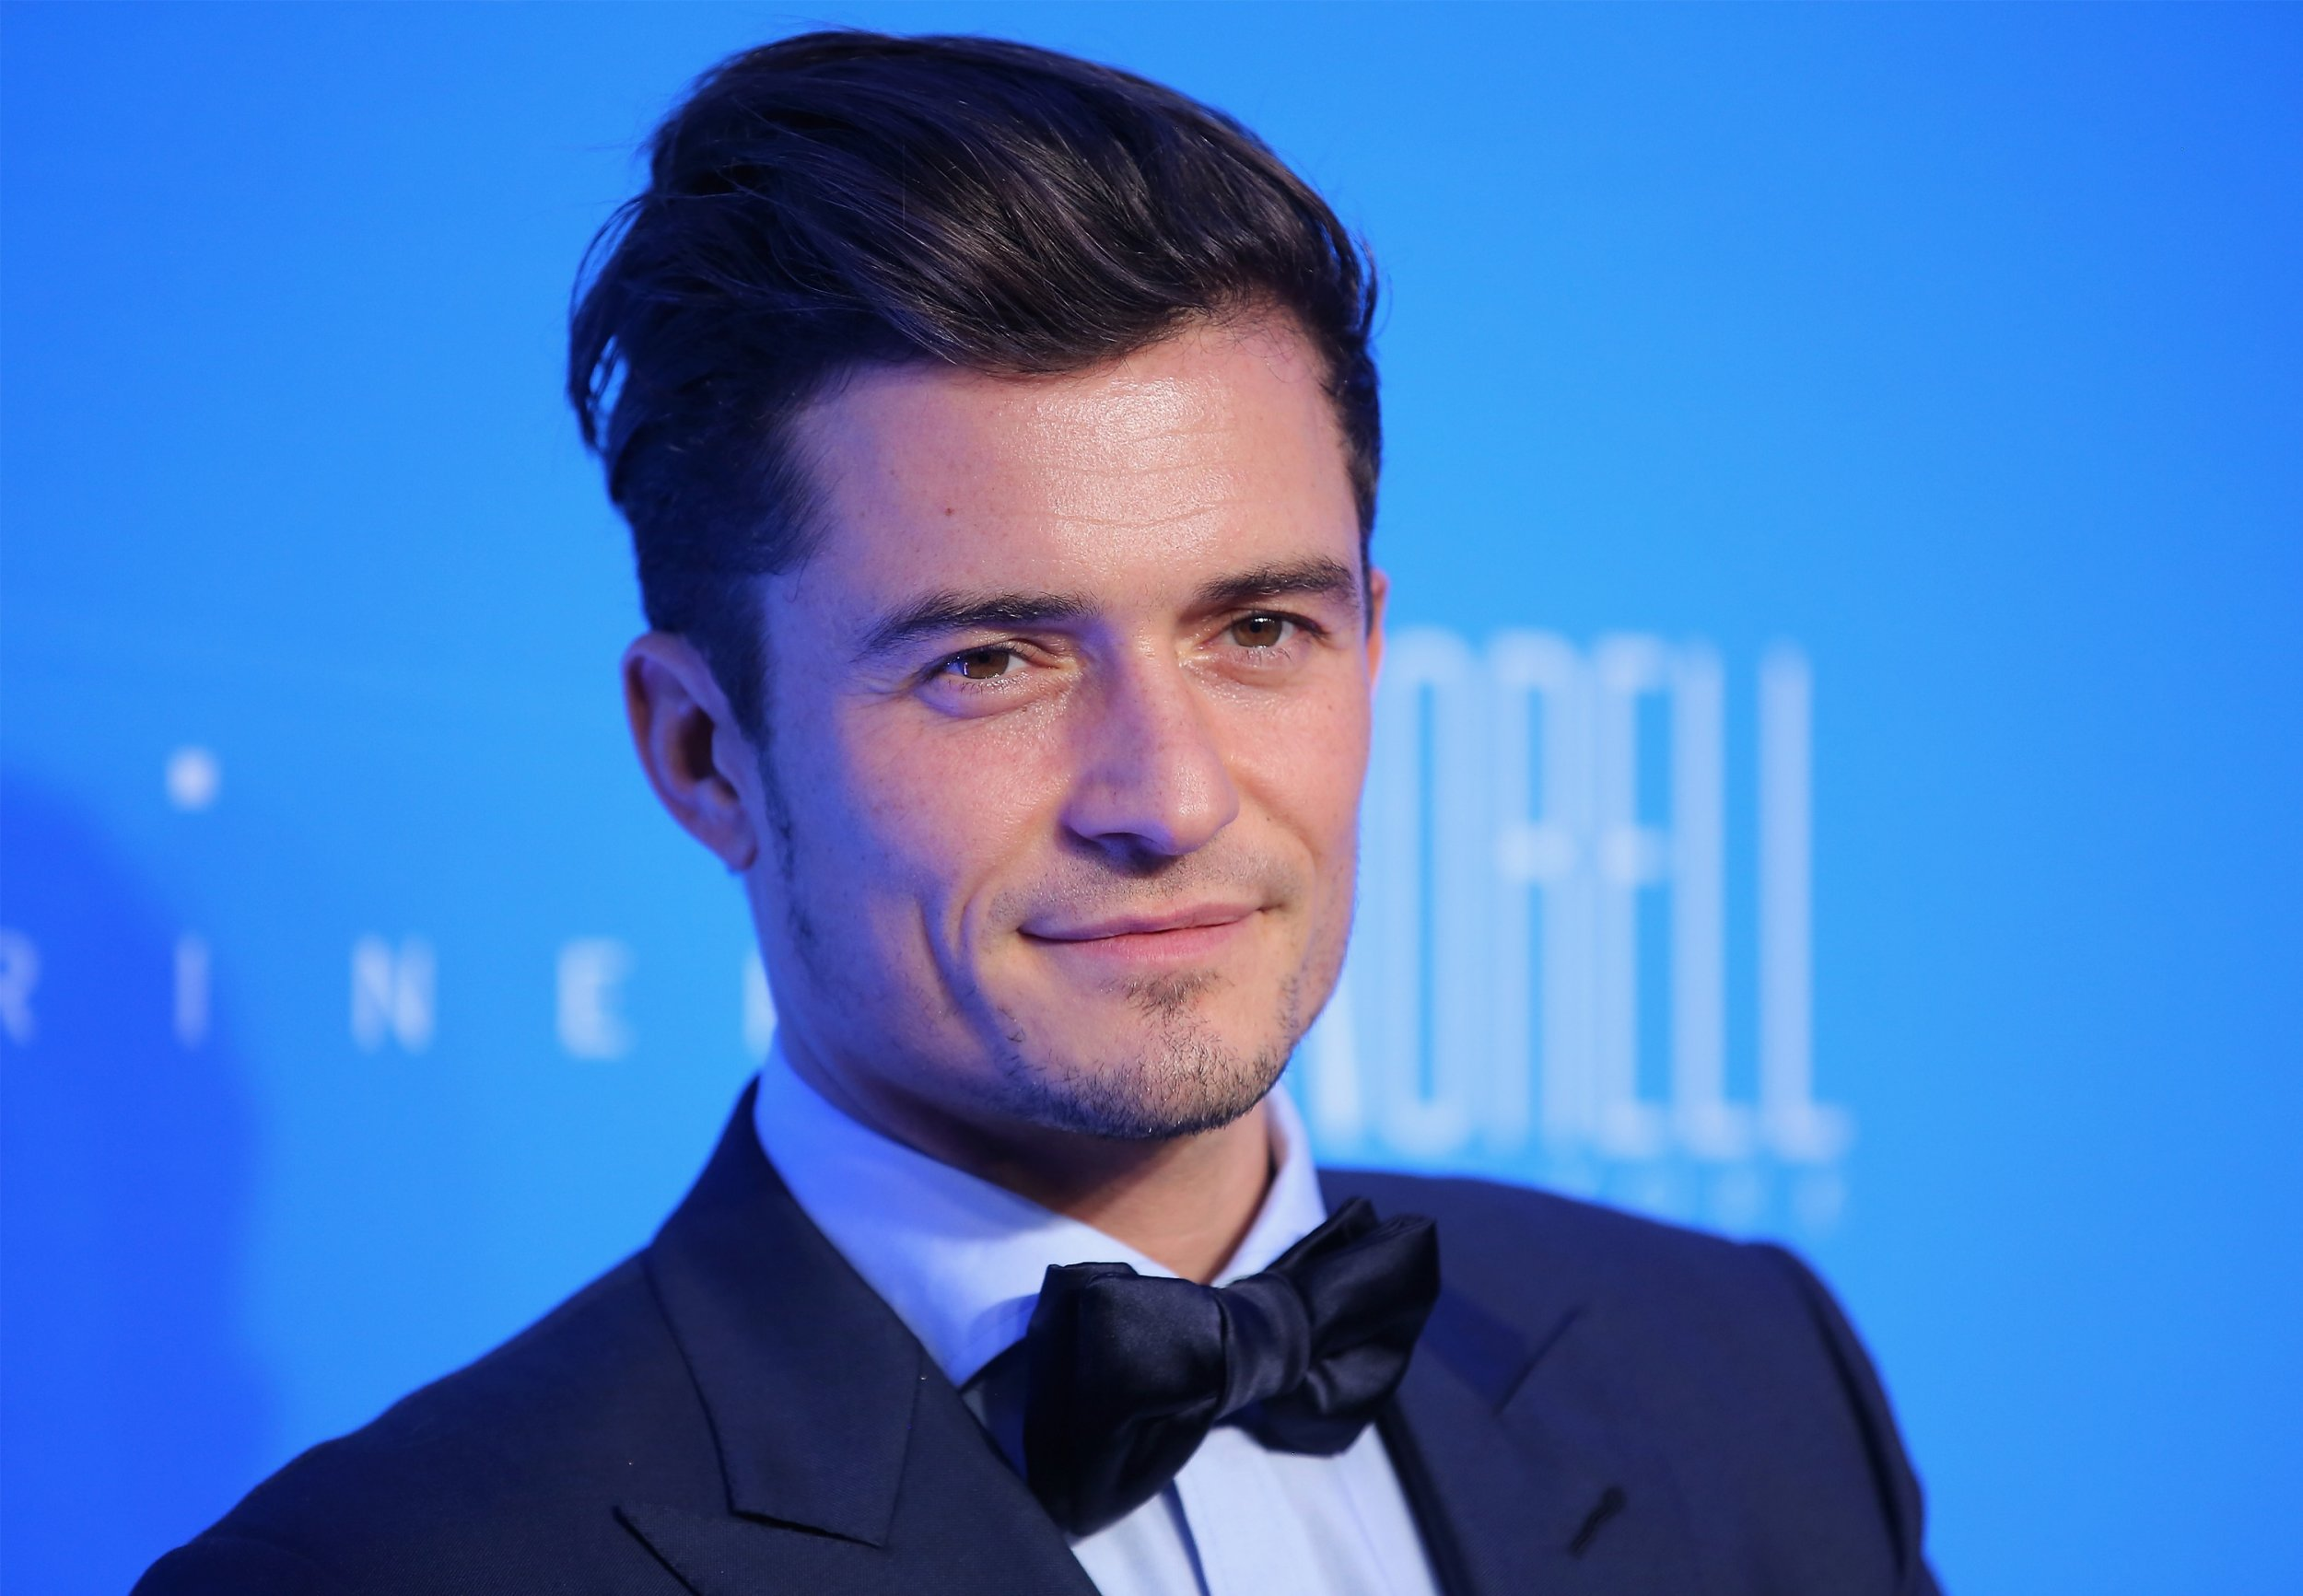 Naked Orlando Bloom Pictures Cause Worldwide Social Media Frenzy-2594